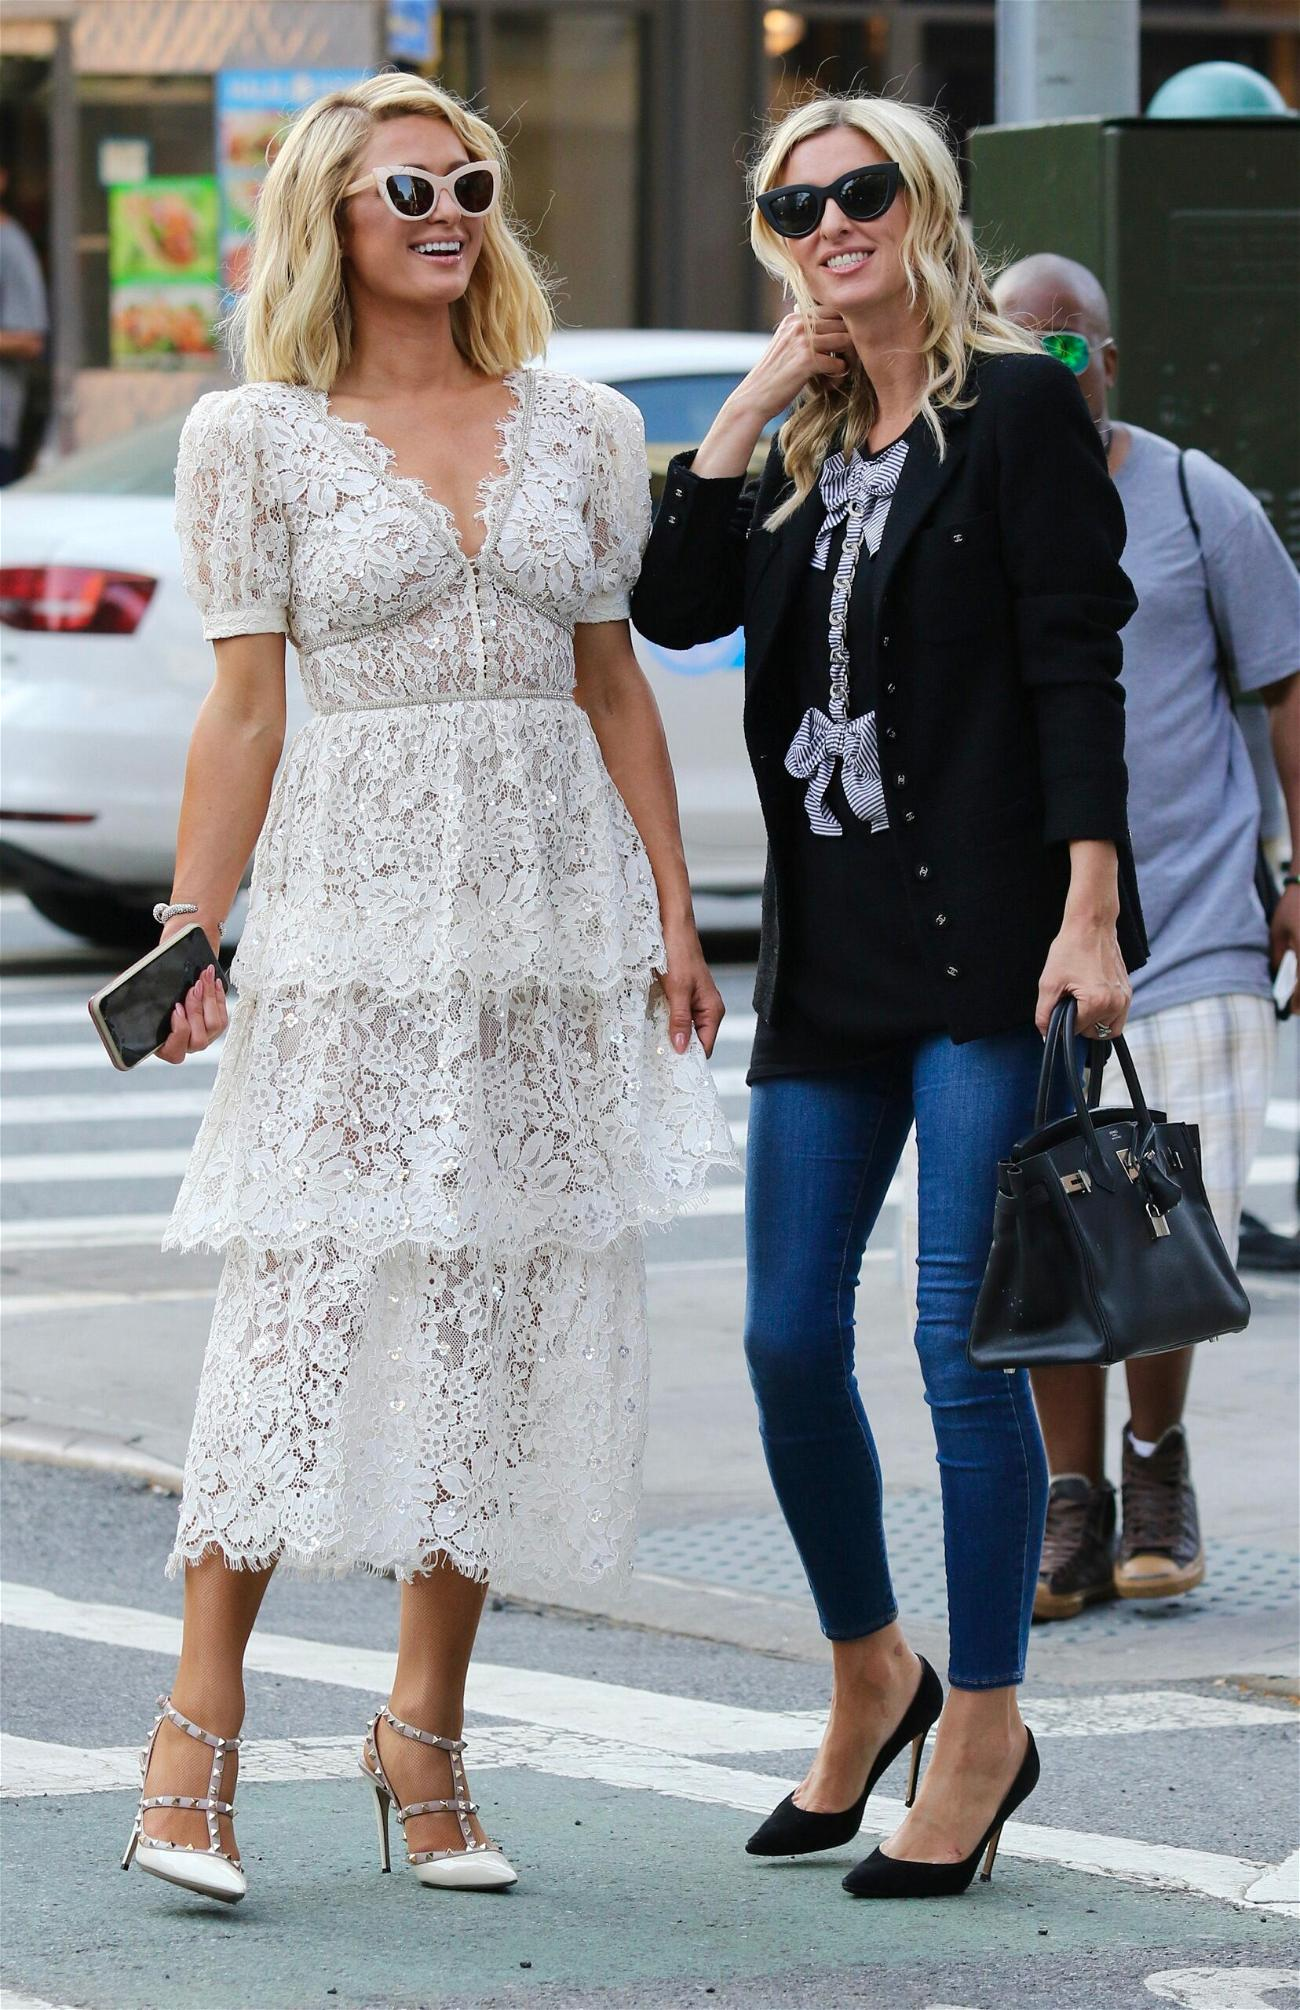 Paris and Nicky Hilton in NYC